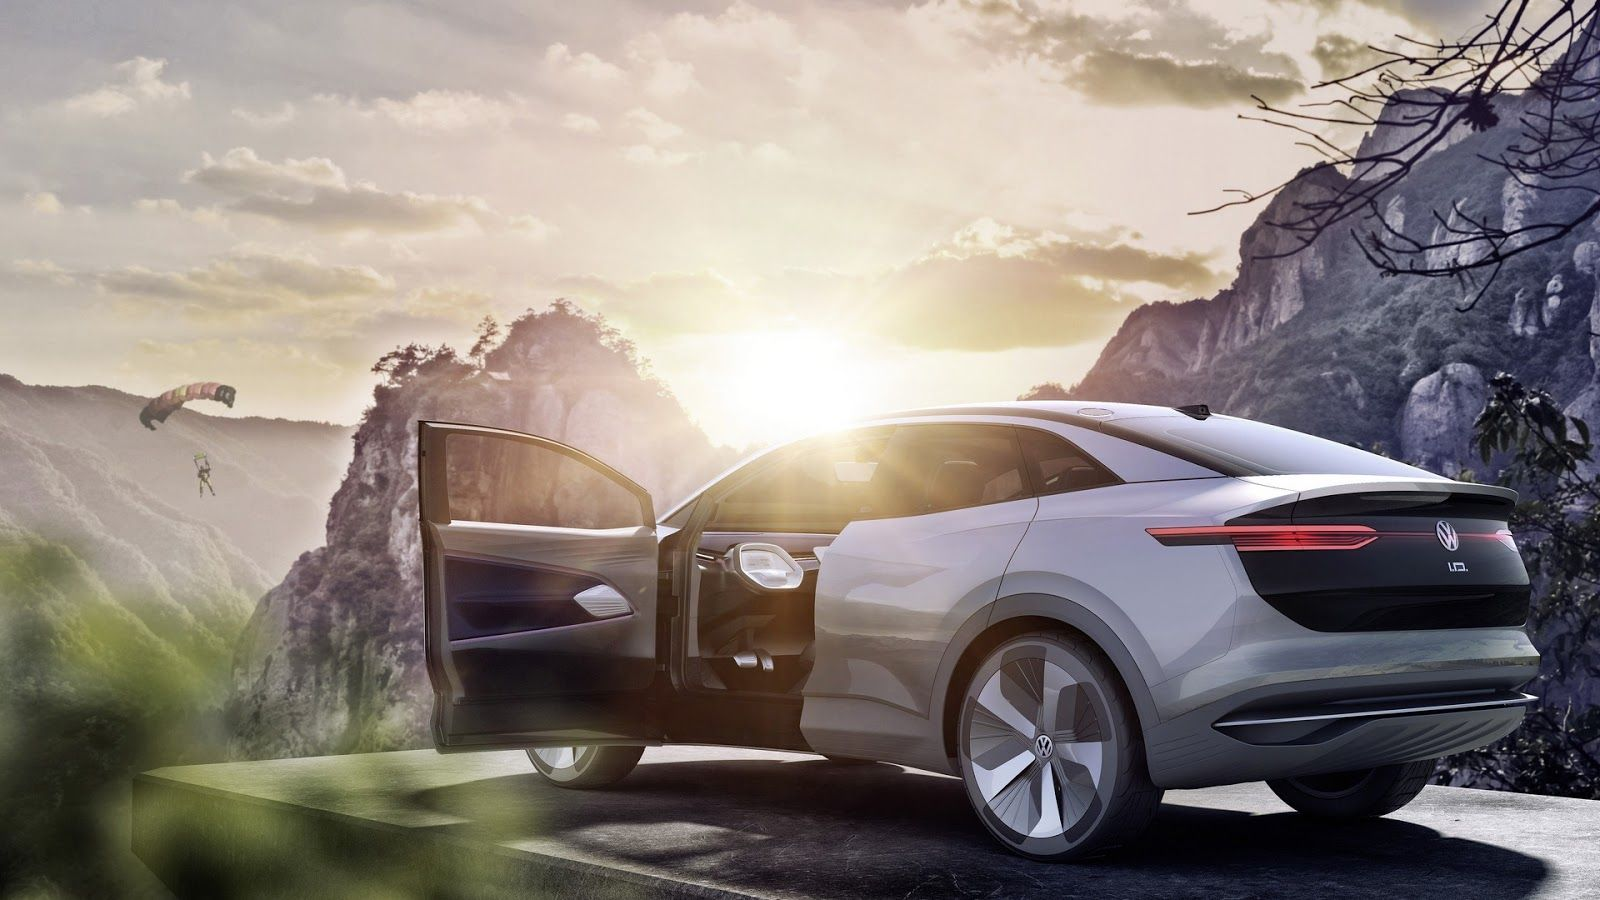 Volkswagen I.D. Crozz Concept Shows The Way For Electric Crossovers